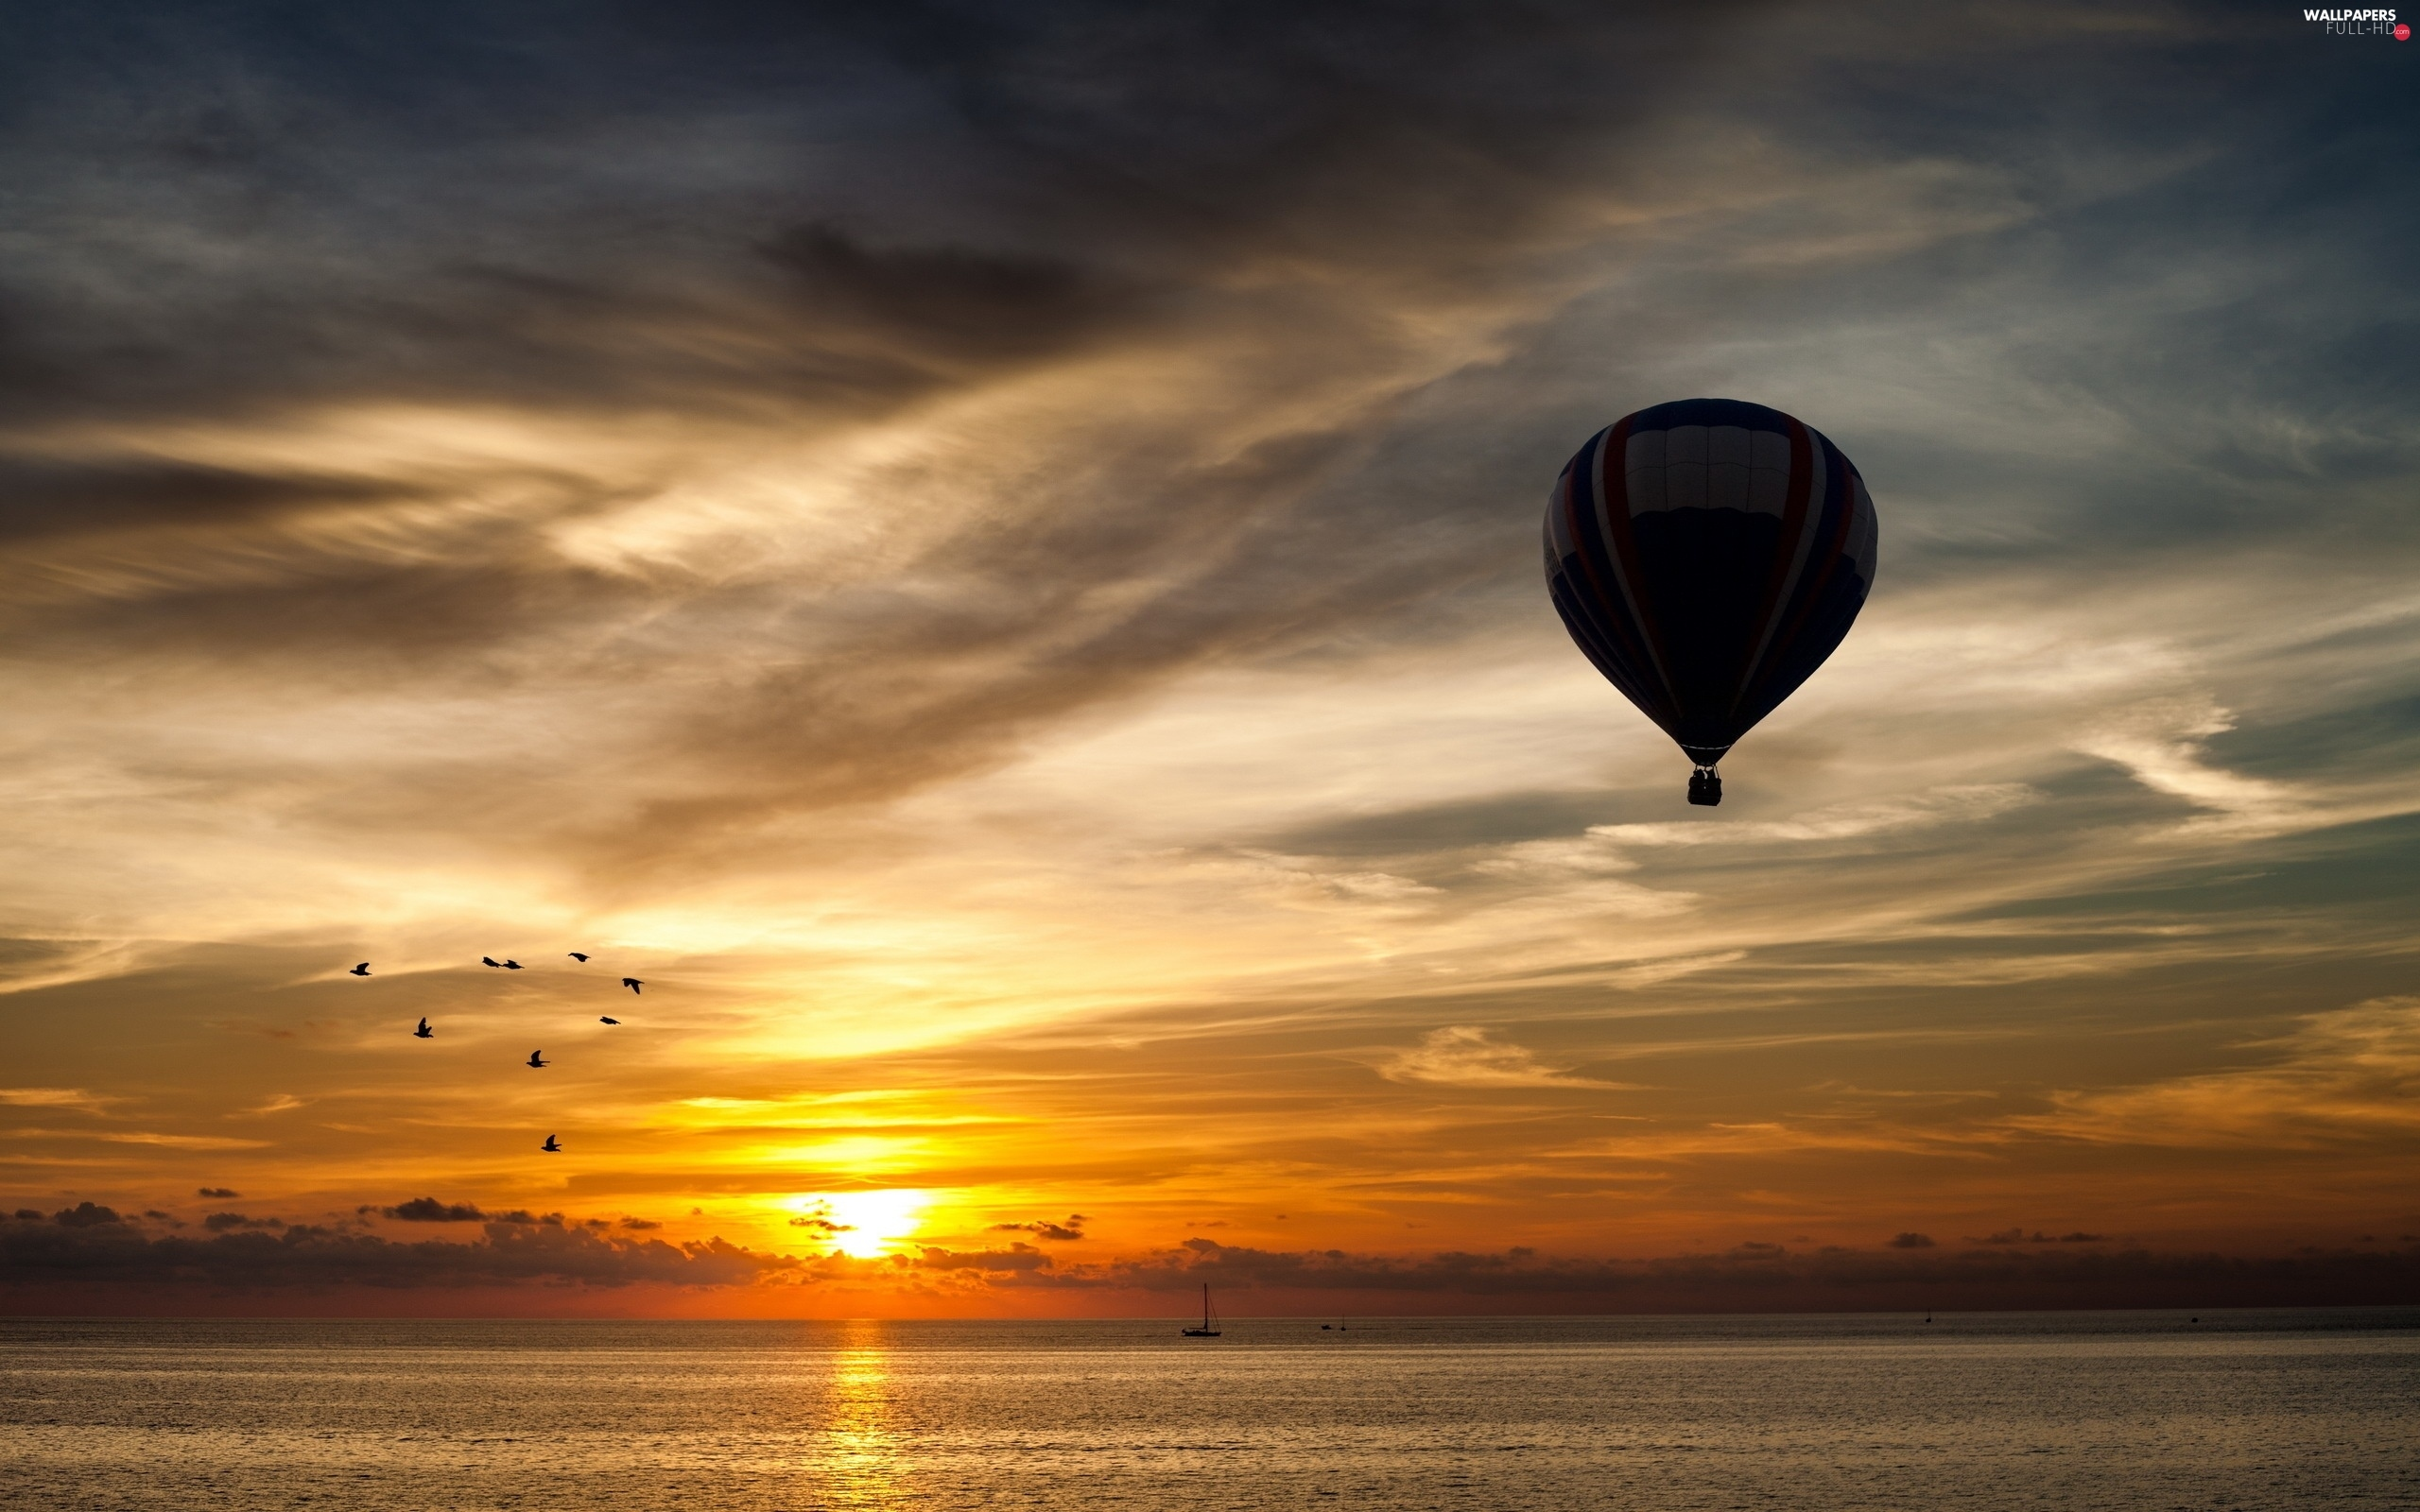 west, Boats, clouds, Balloon, sun, sea